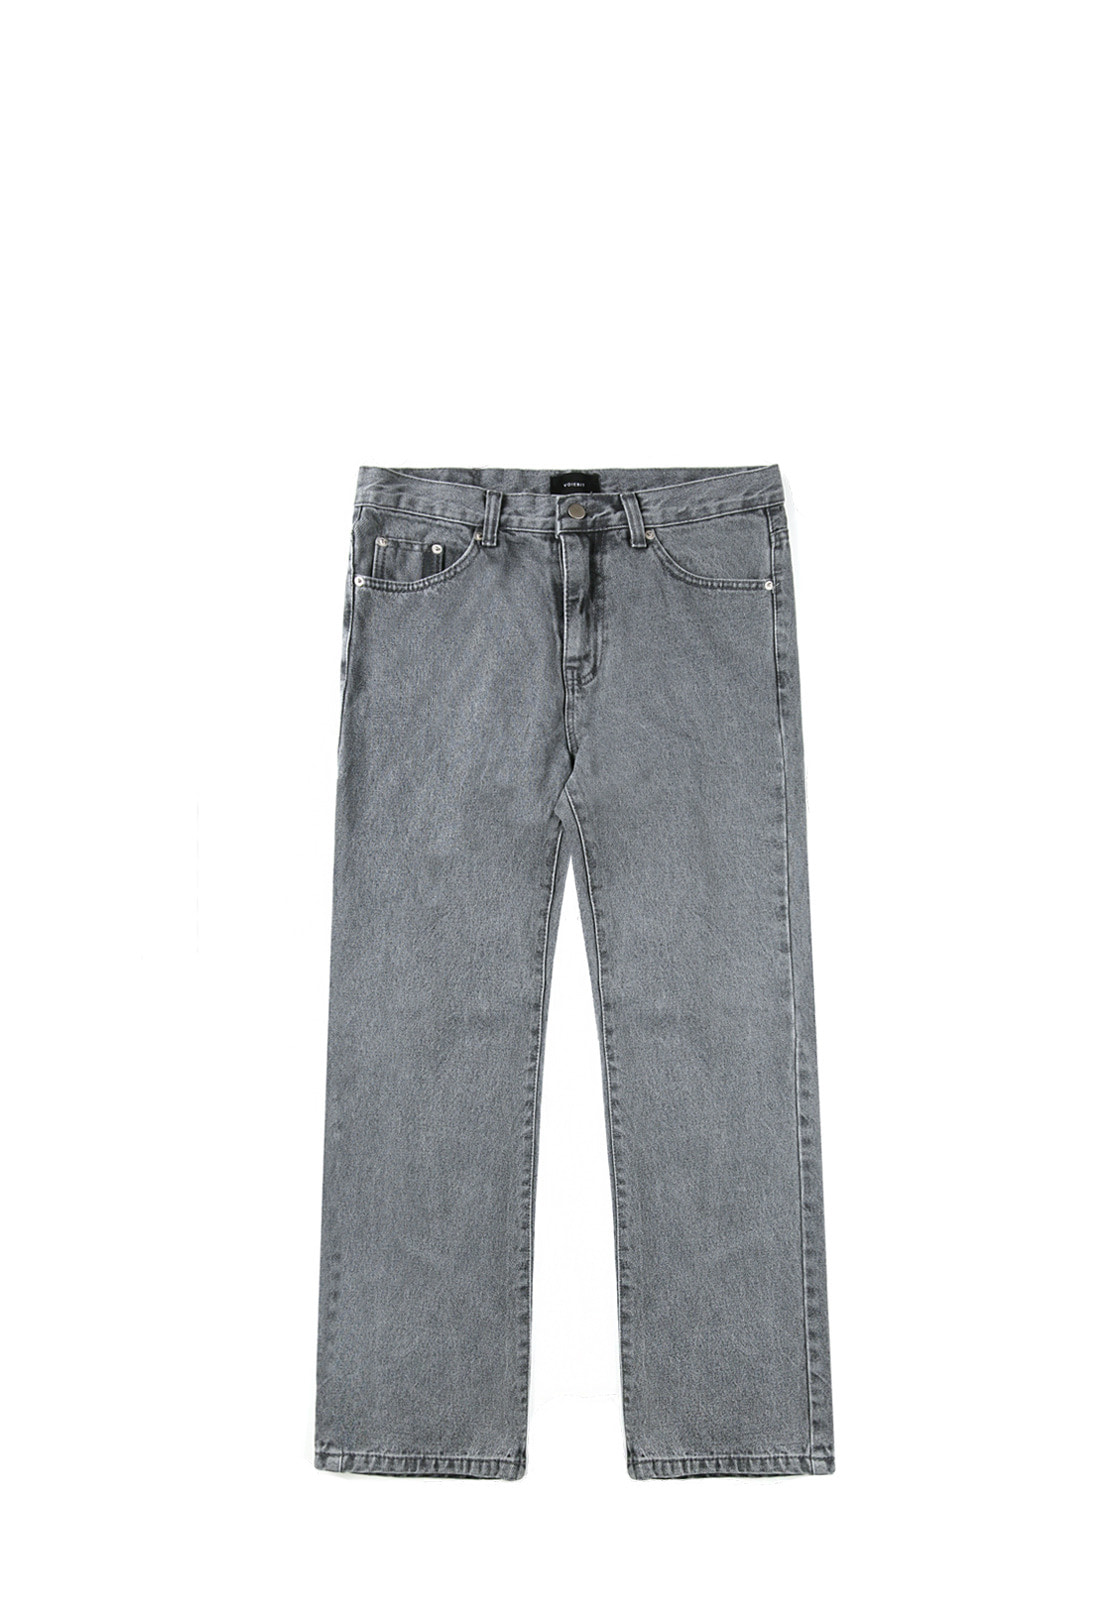 V232 NONE SPAN WIDE DENIM PANTS  GRAY